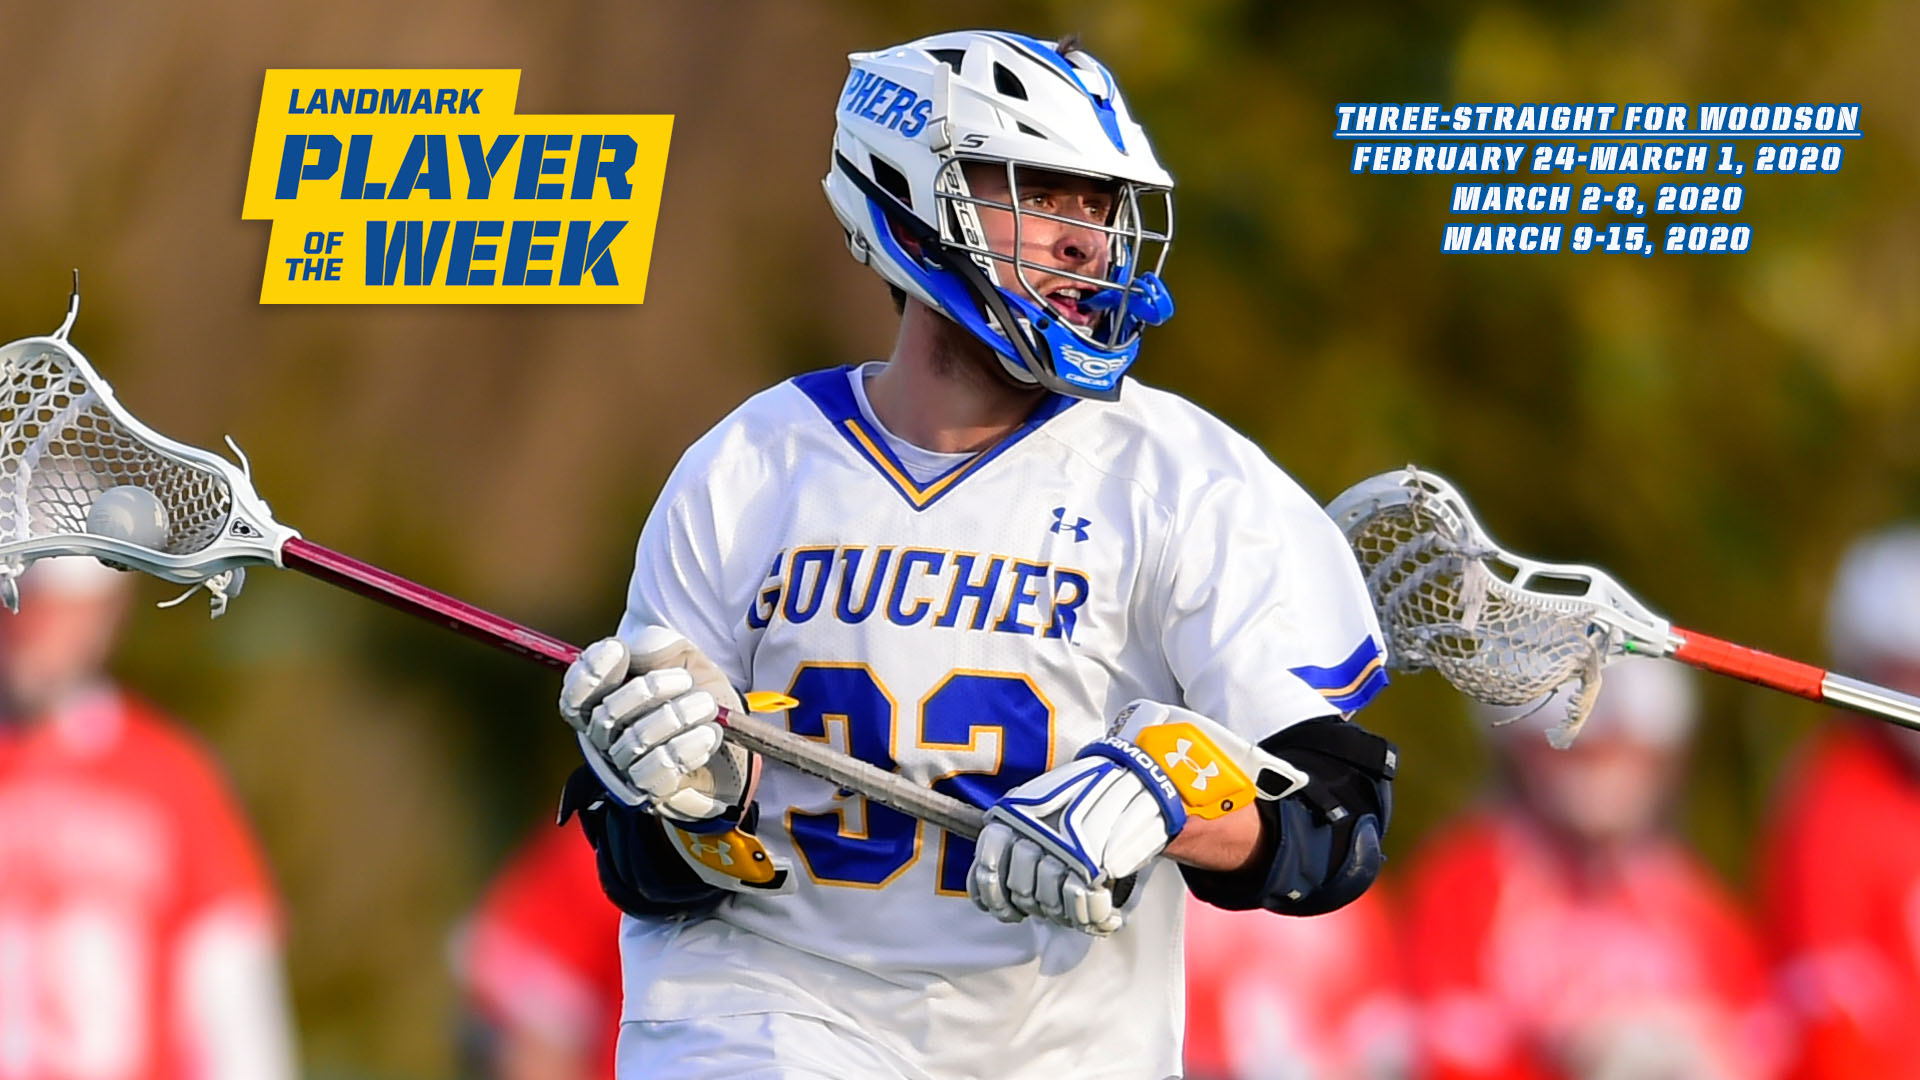 Woodson Is Once, Twice, Three Times A Landmark Conference Men's Lacrosse Offensive Athlete Of The Week